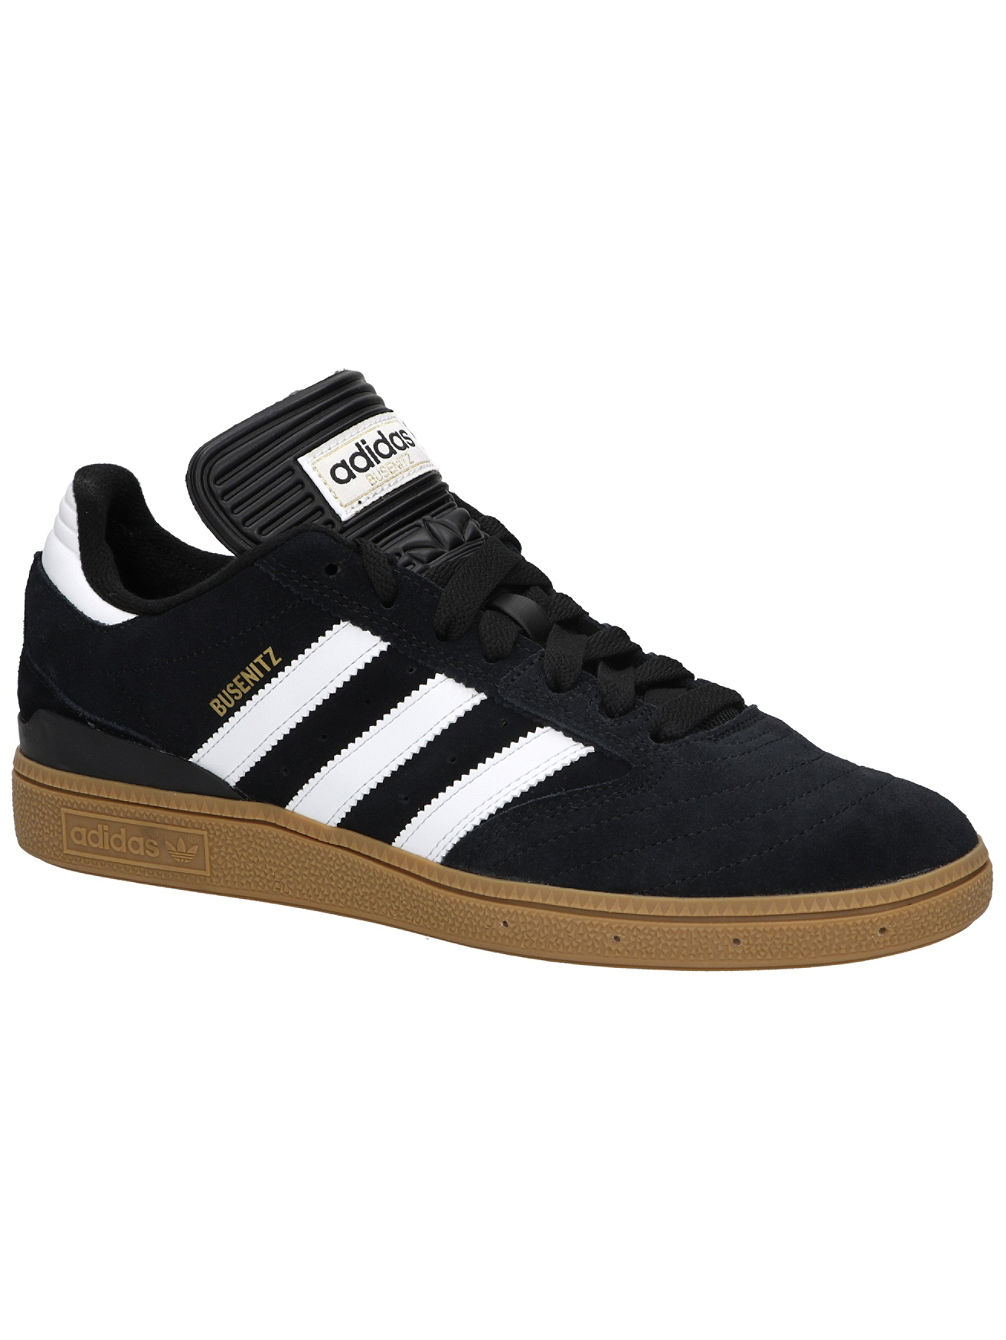 purchase cheap 441fc 9ad8e Buy adidas Skateboarding Busenitz Skate Shoes online at Blue Tomato